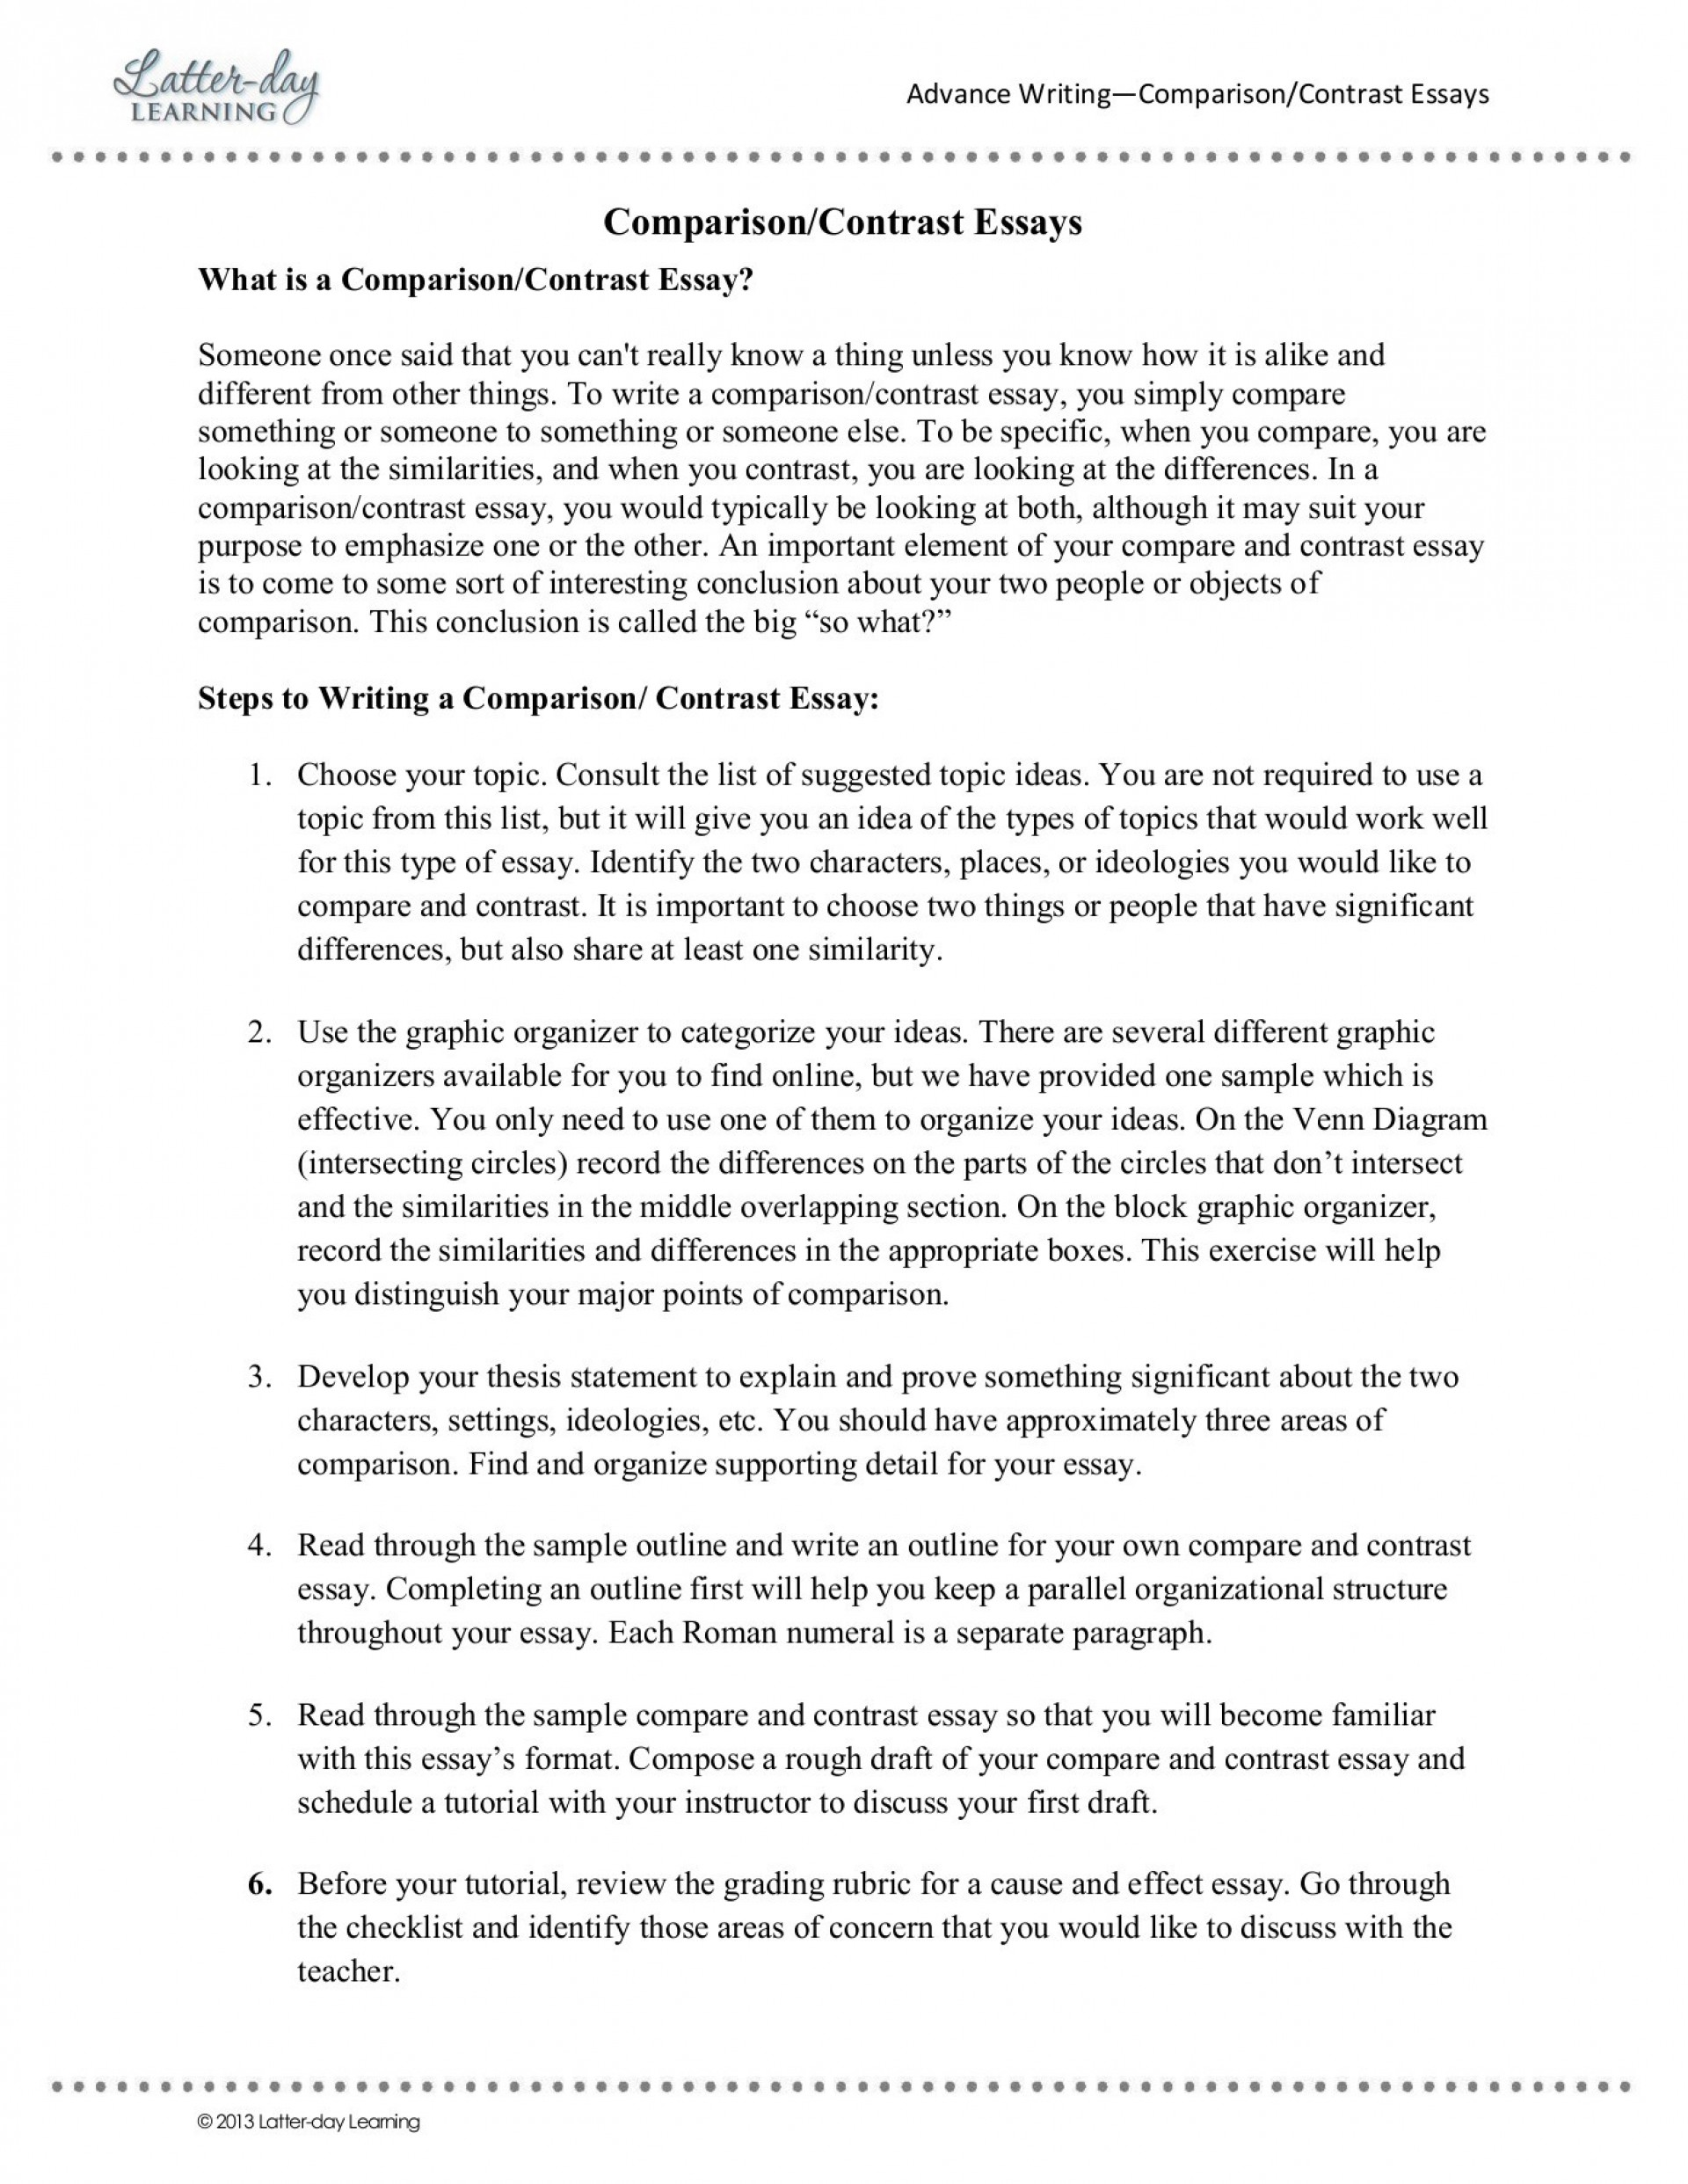 010 Essay Example What Is Compare And Contrast Striking A Does Comparison/contrast Look Like Should Provide Good Topic Sentence For 1920